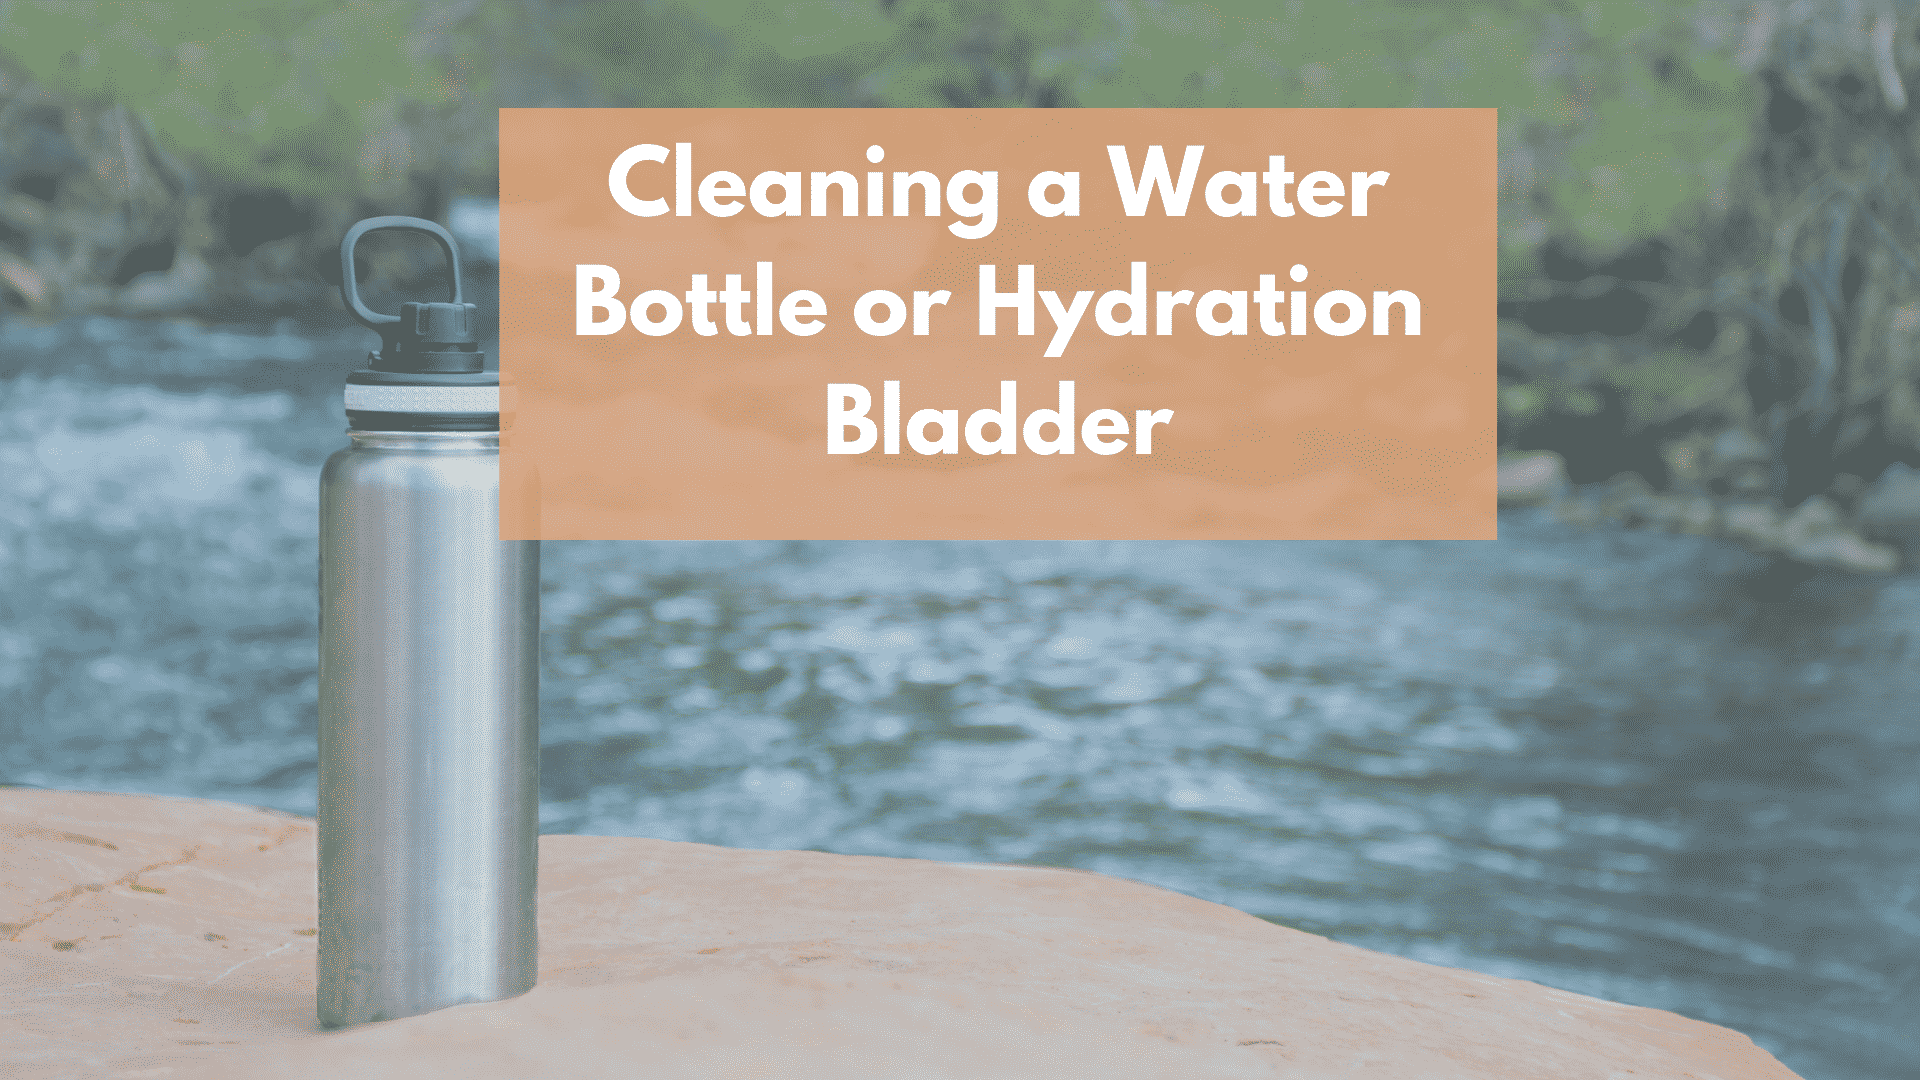 Clean a water bottle or hydration bladder